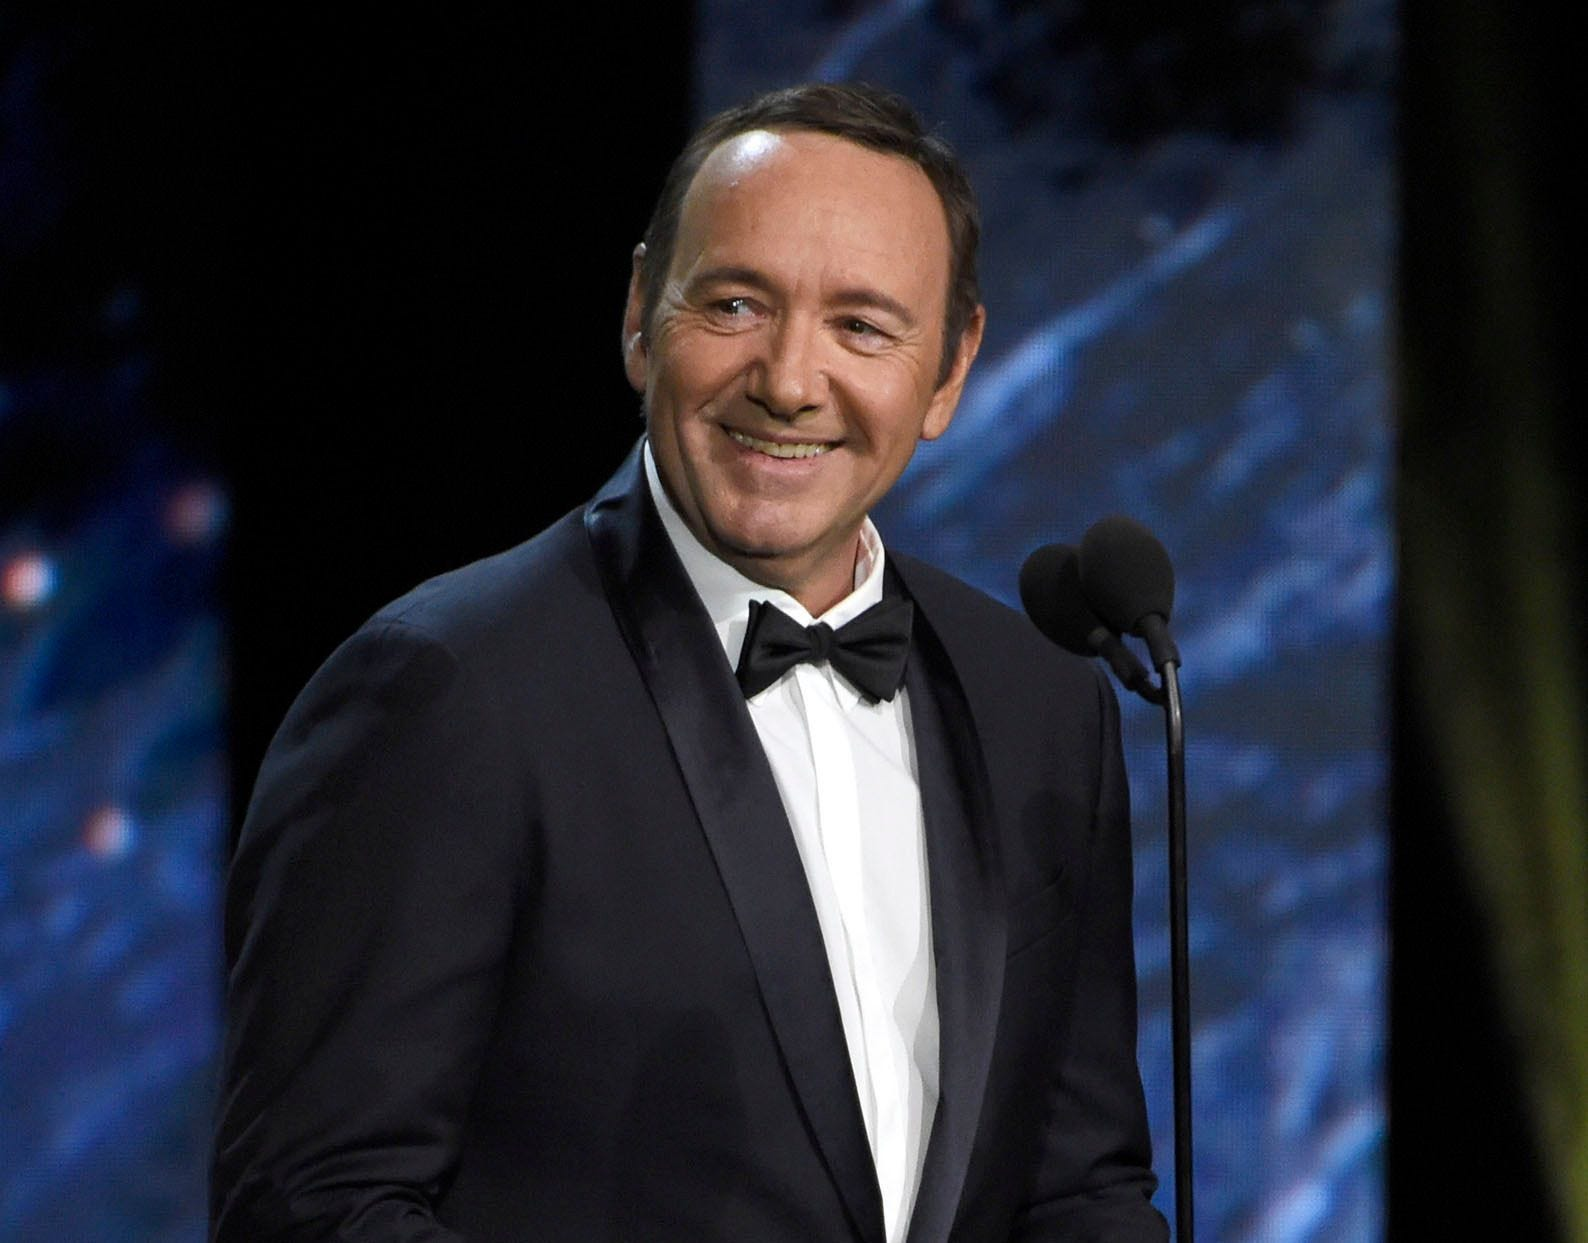 Charged with harassment Kevin Spacey admitted that he is gay 10/30/2017 30